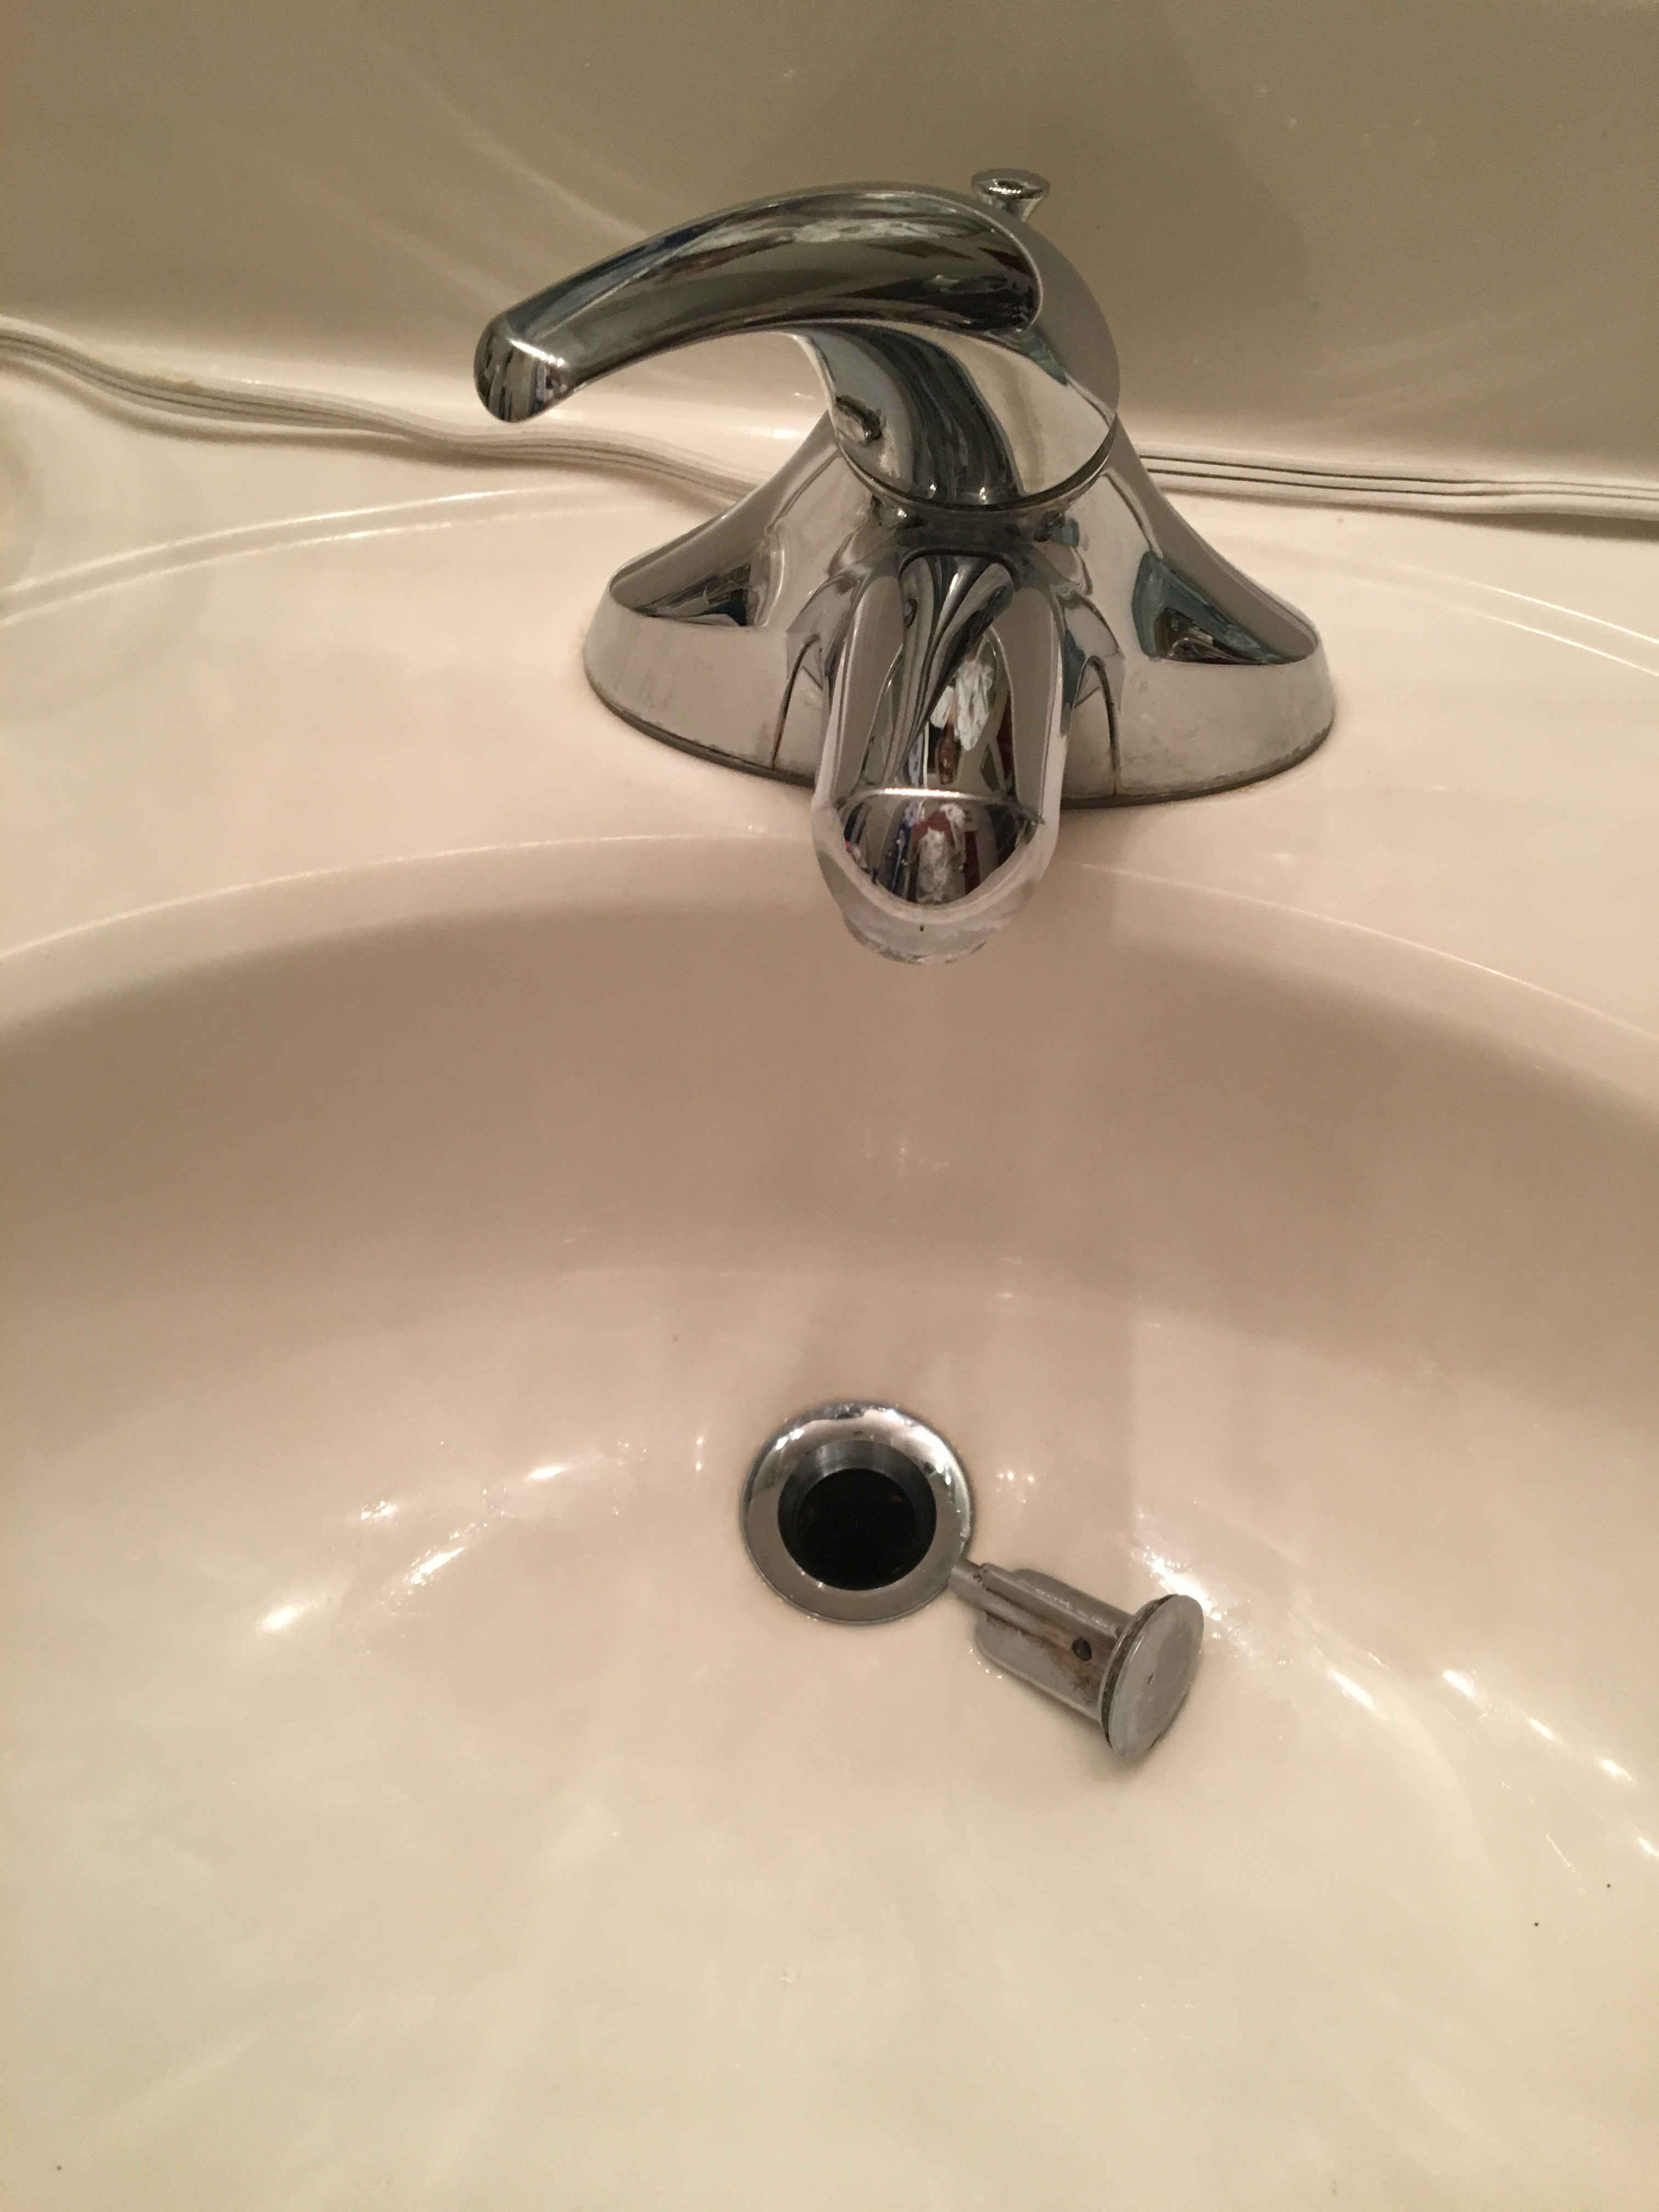 Sink Shroom Quick Fix For Broken Bathroom Sink Stopper And Clog Prevention The Windy Side